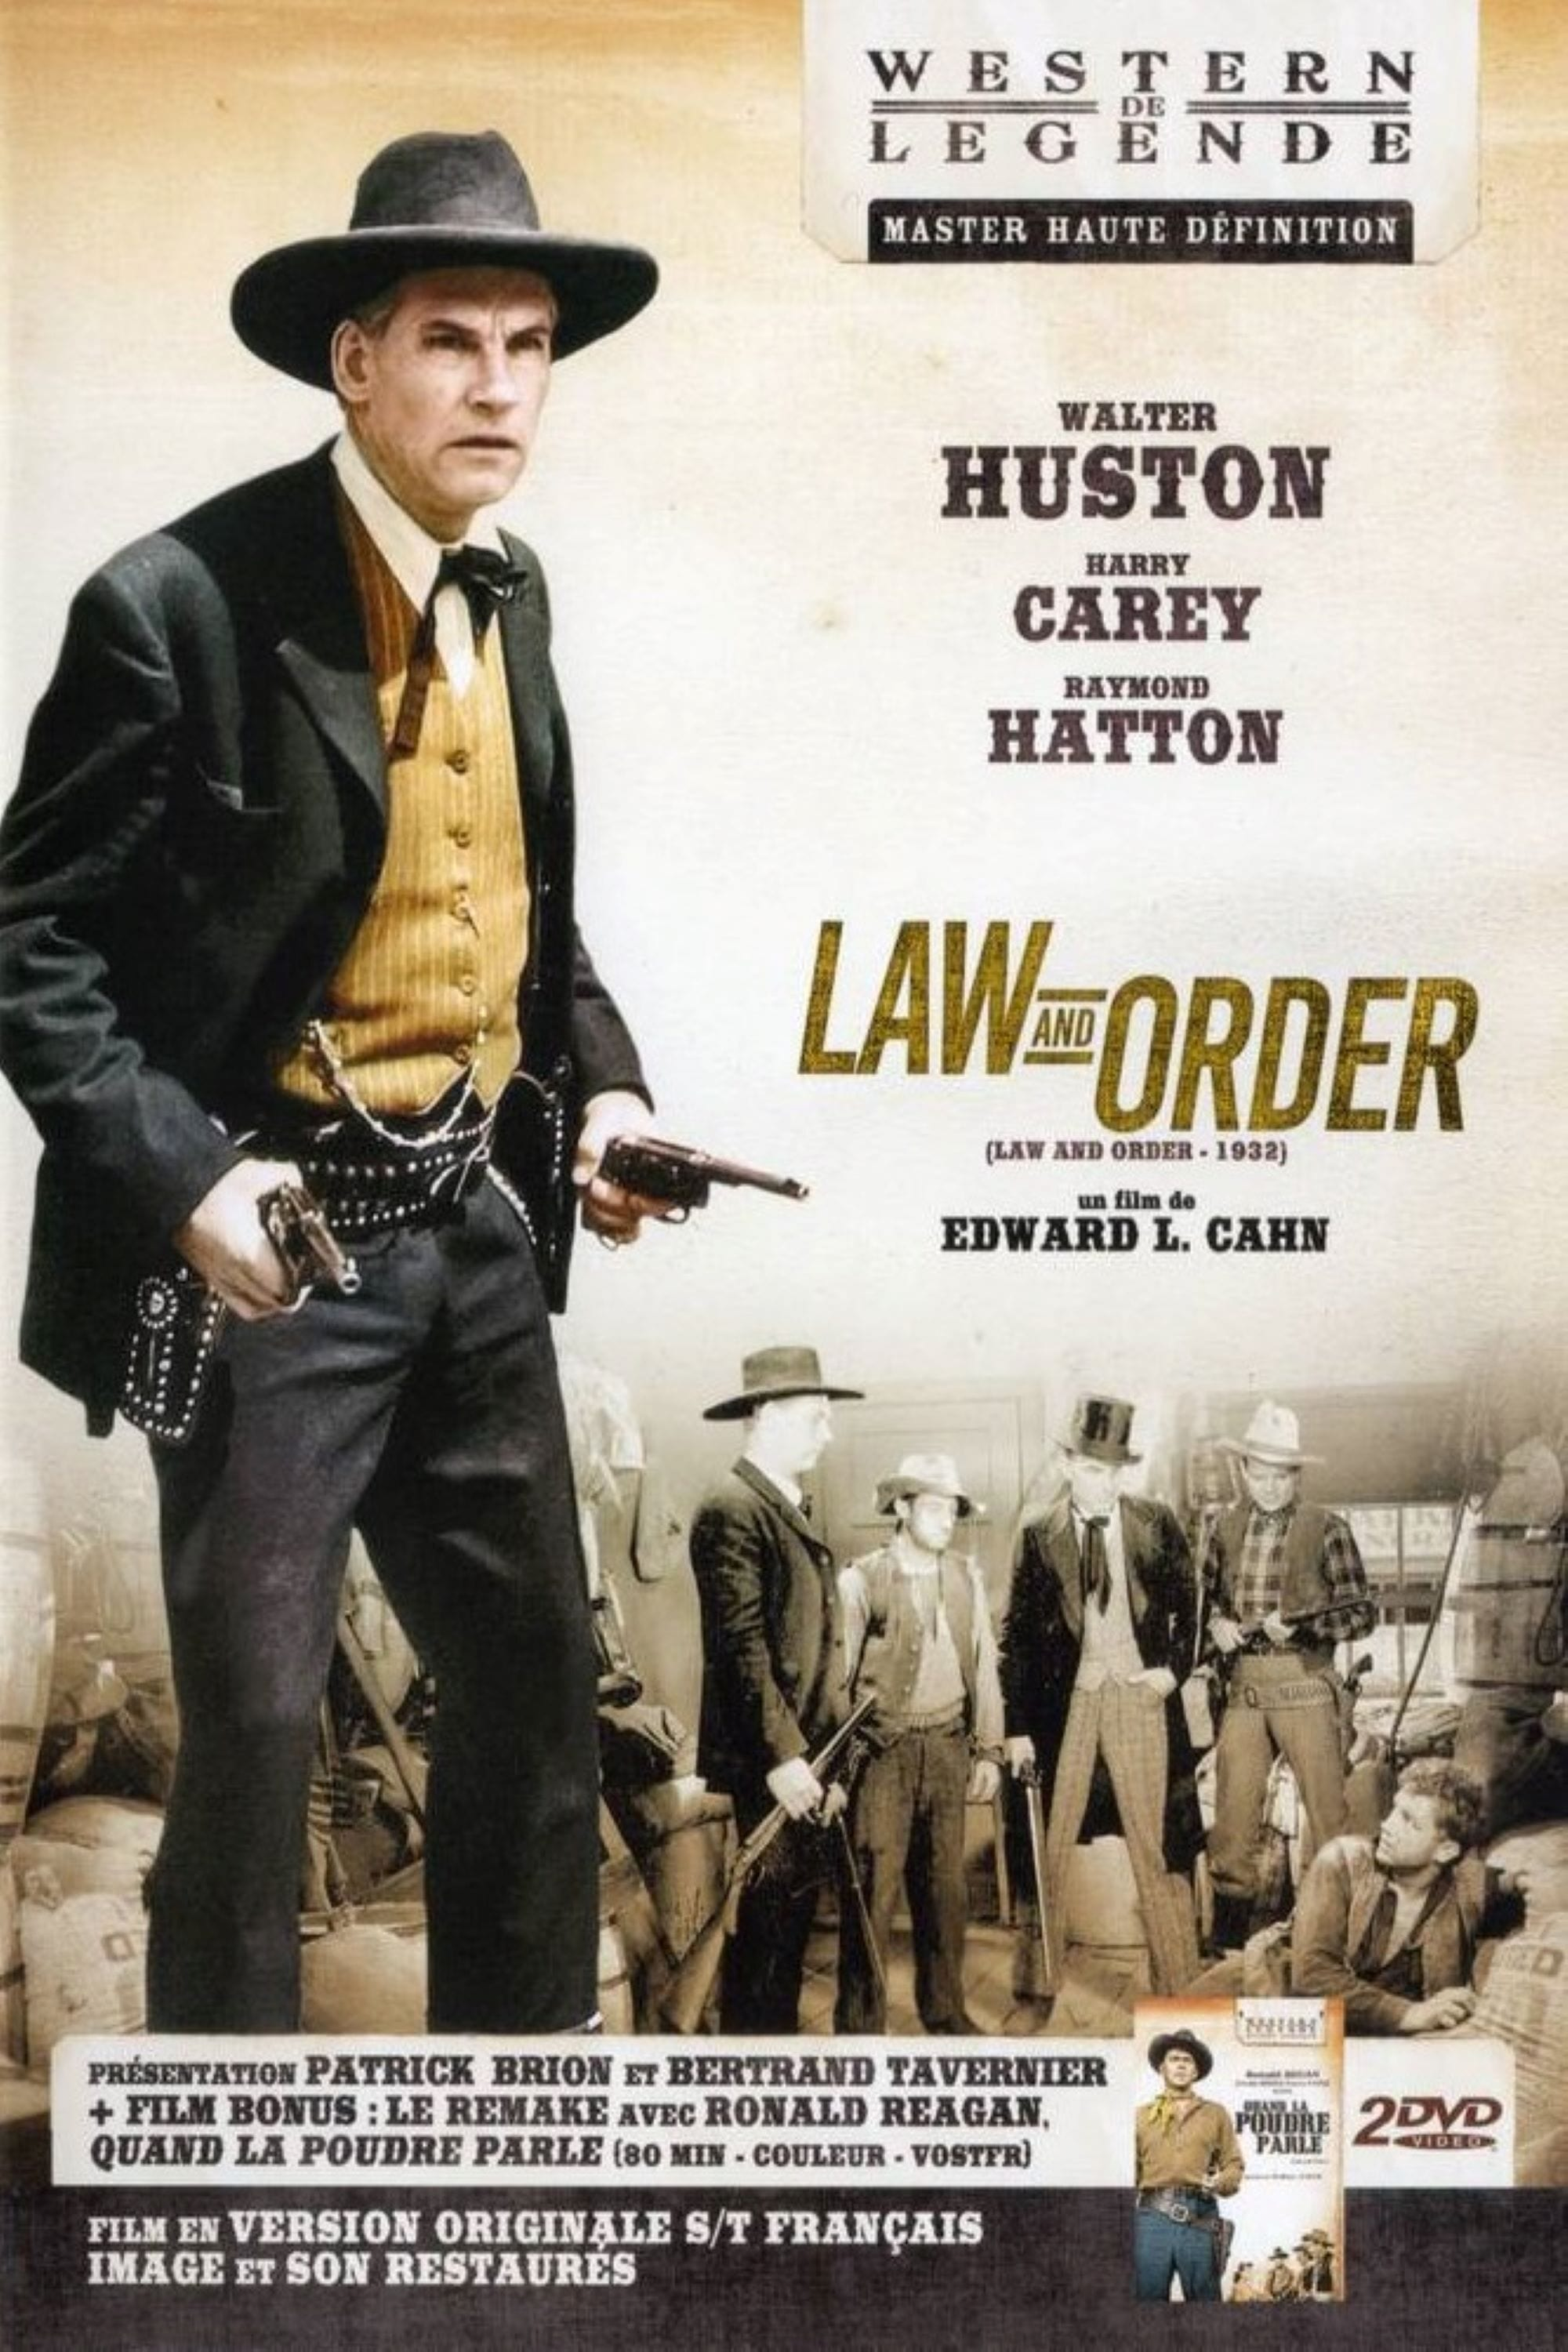 Law and Order (1932)